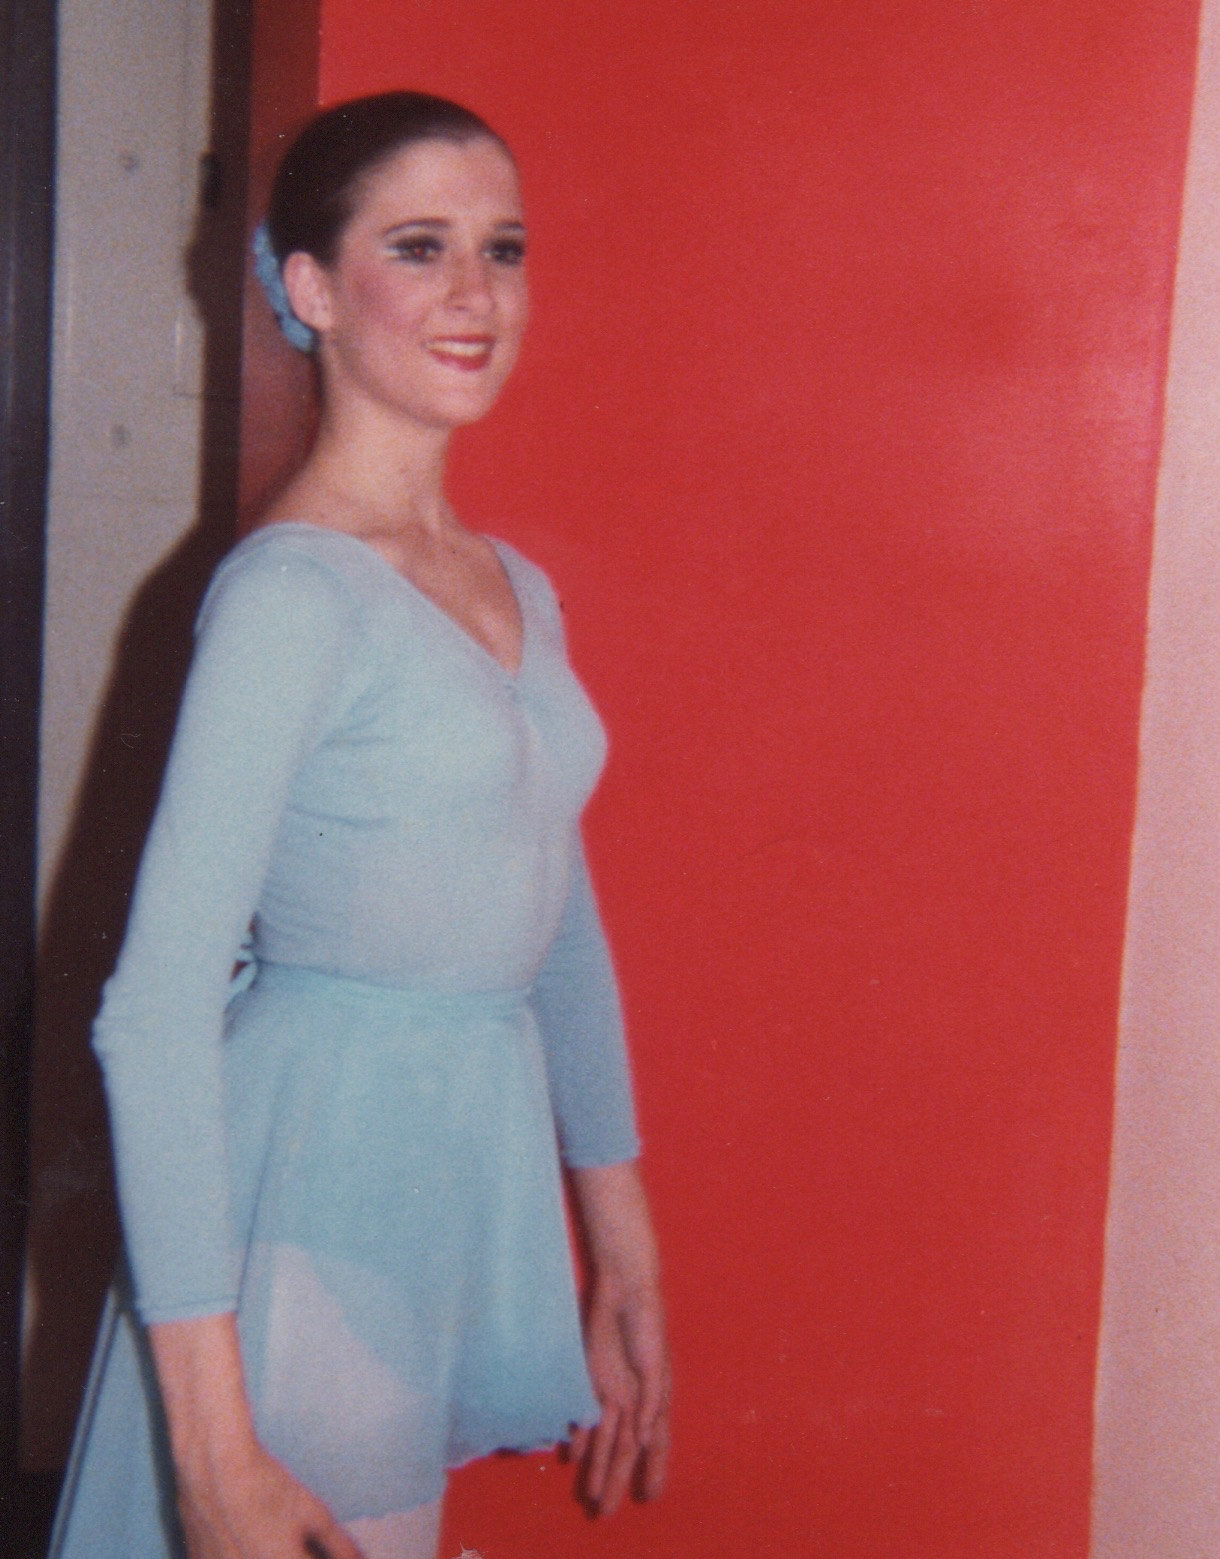 zouRA O'NEILL BACKSTAGE AT SAN FRANCISCO BALLET'S STUDENT SHOWCASE, 1981